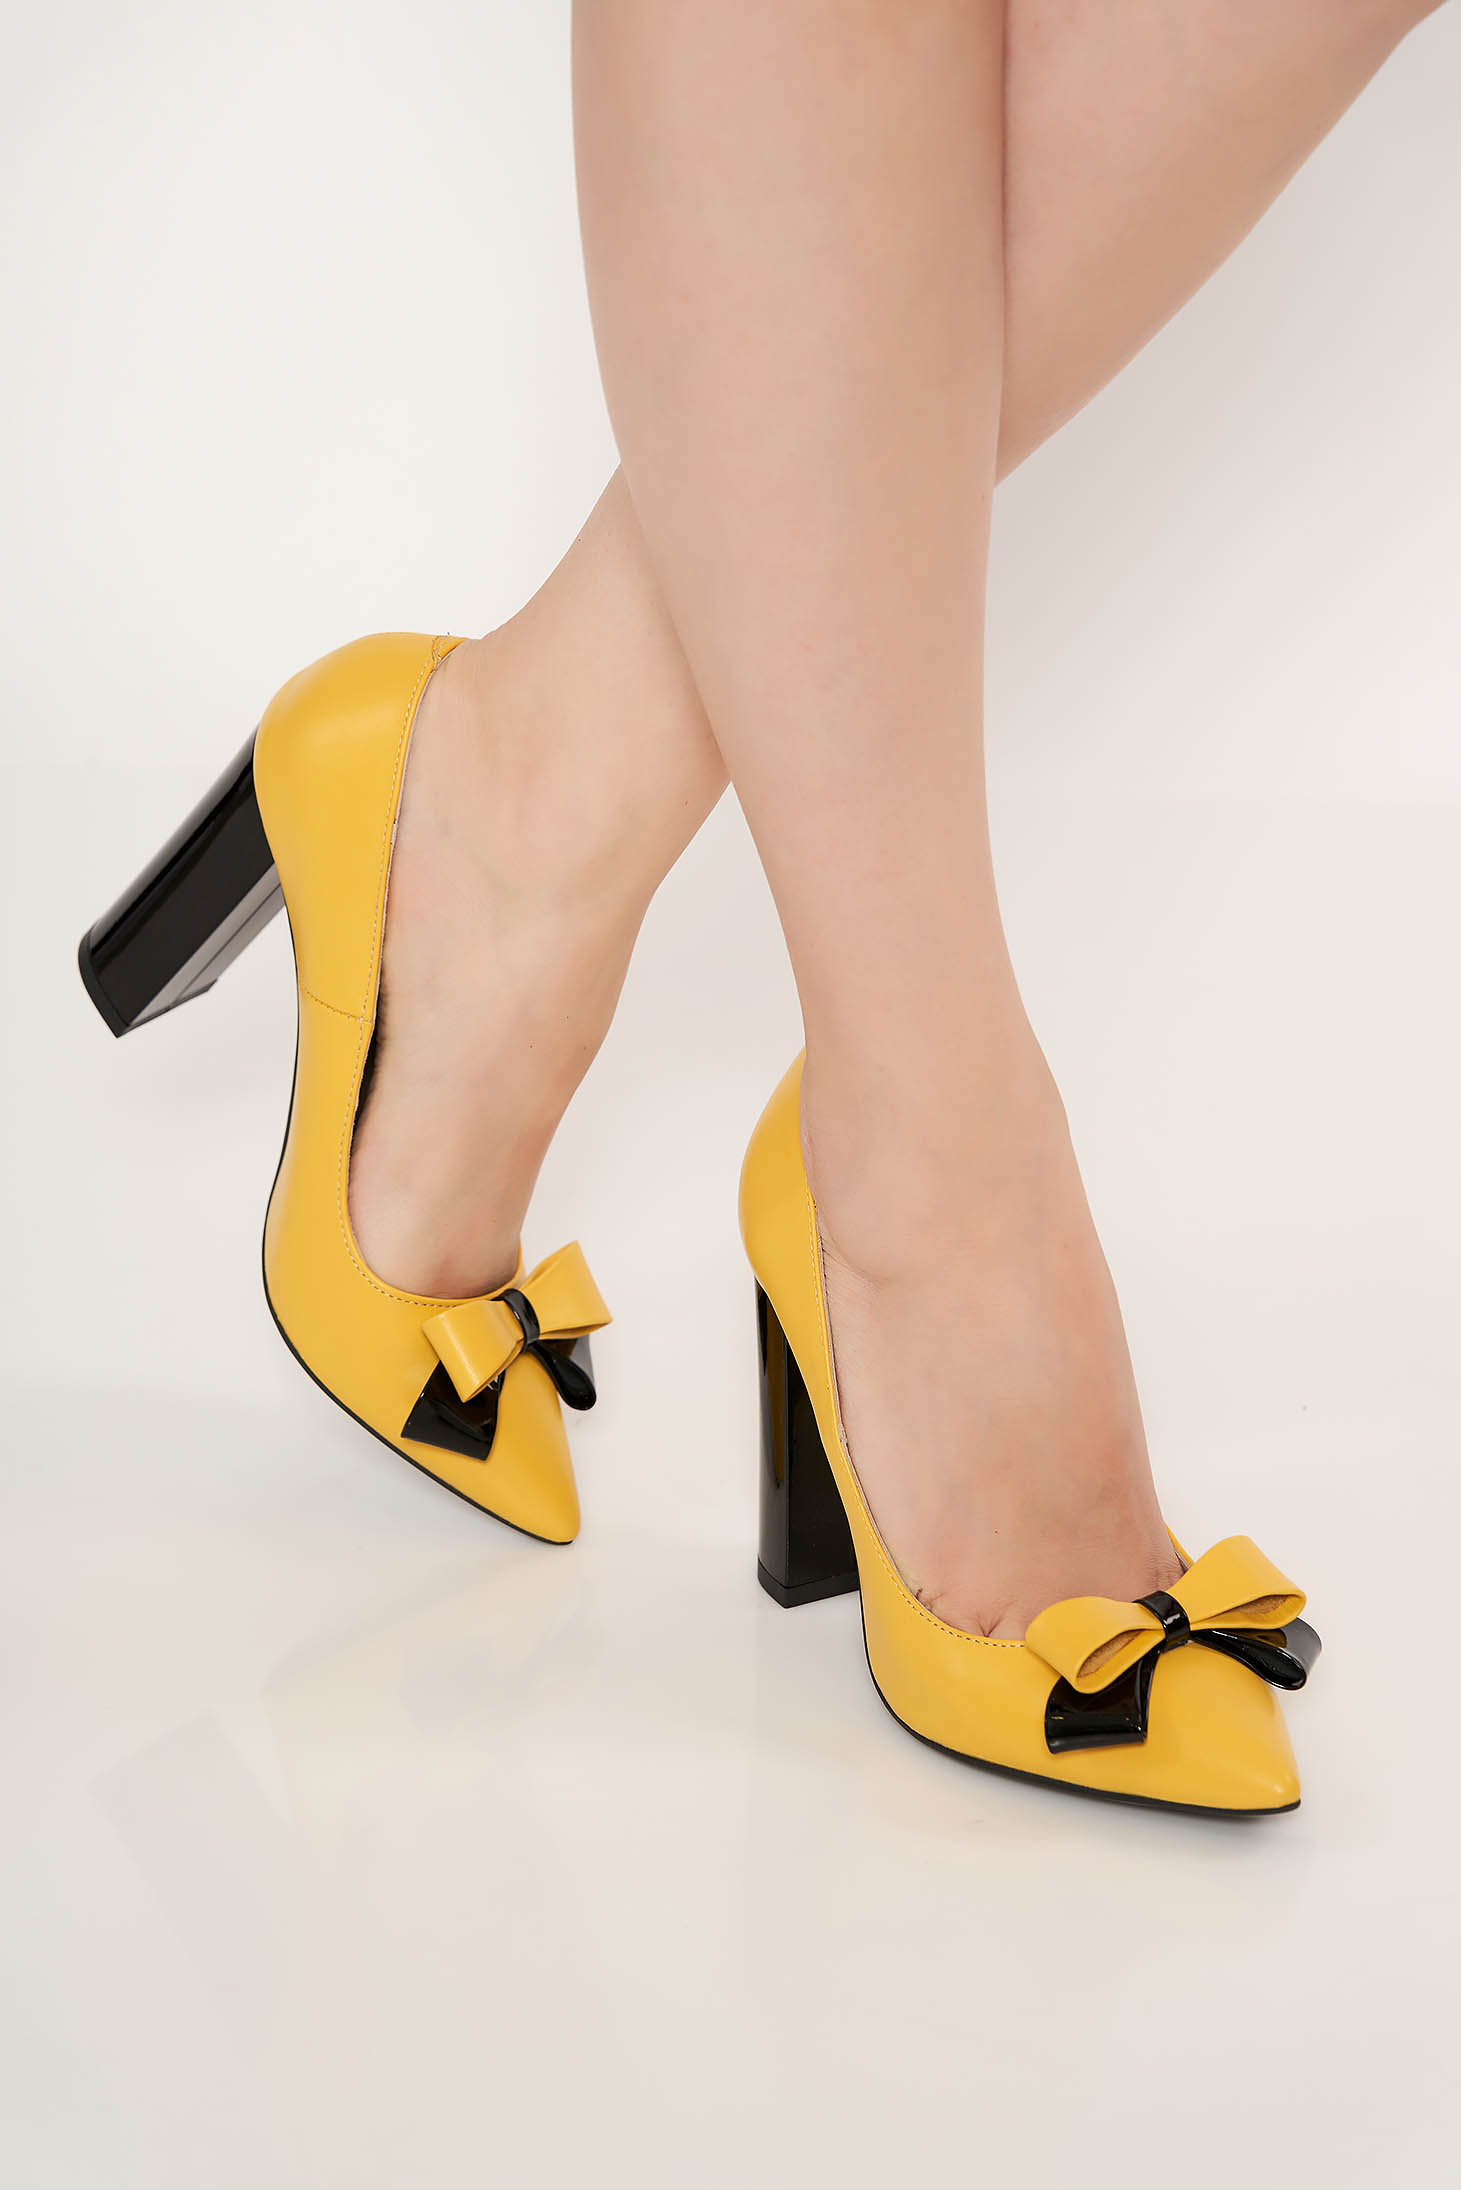 Yellow office shoes natural leather chunky heel slightly pointed toe tip bow accessory